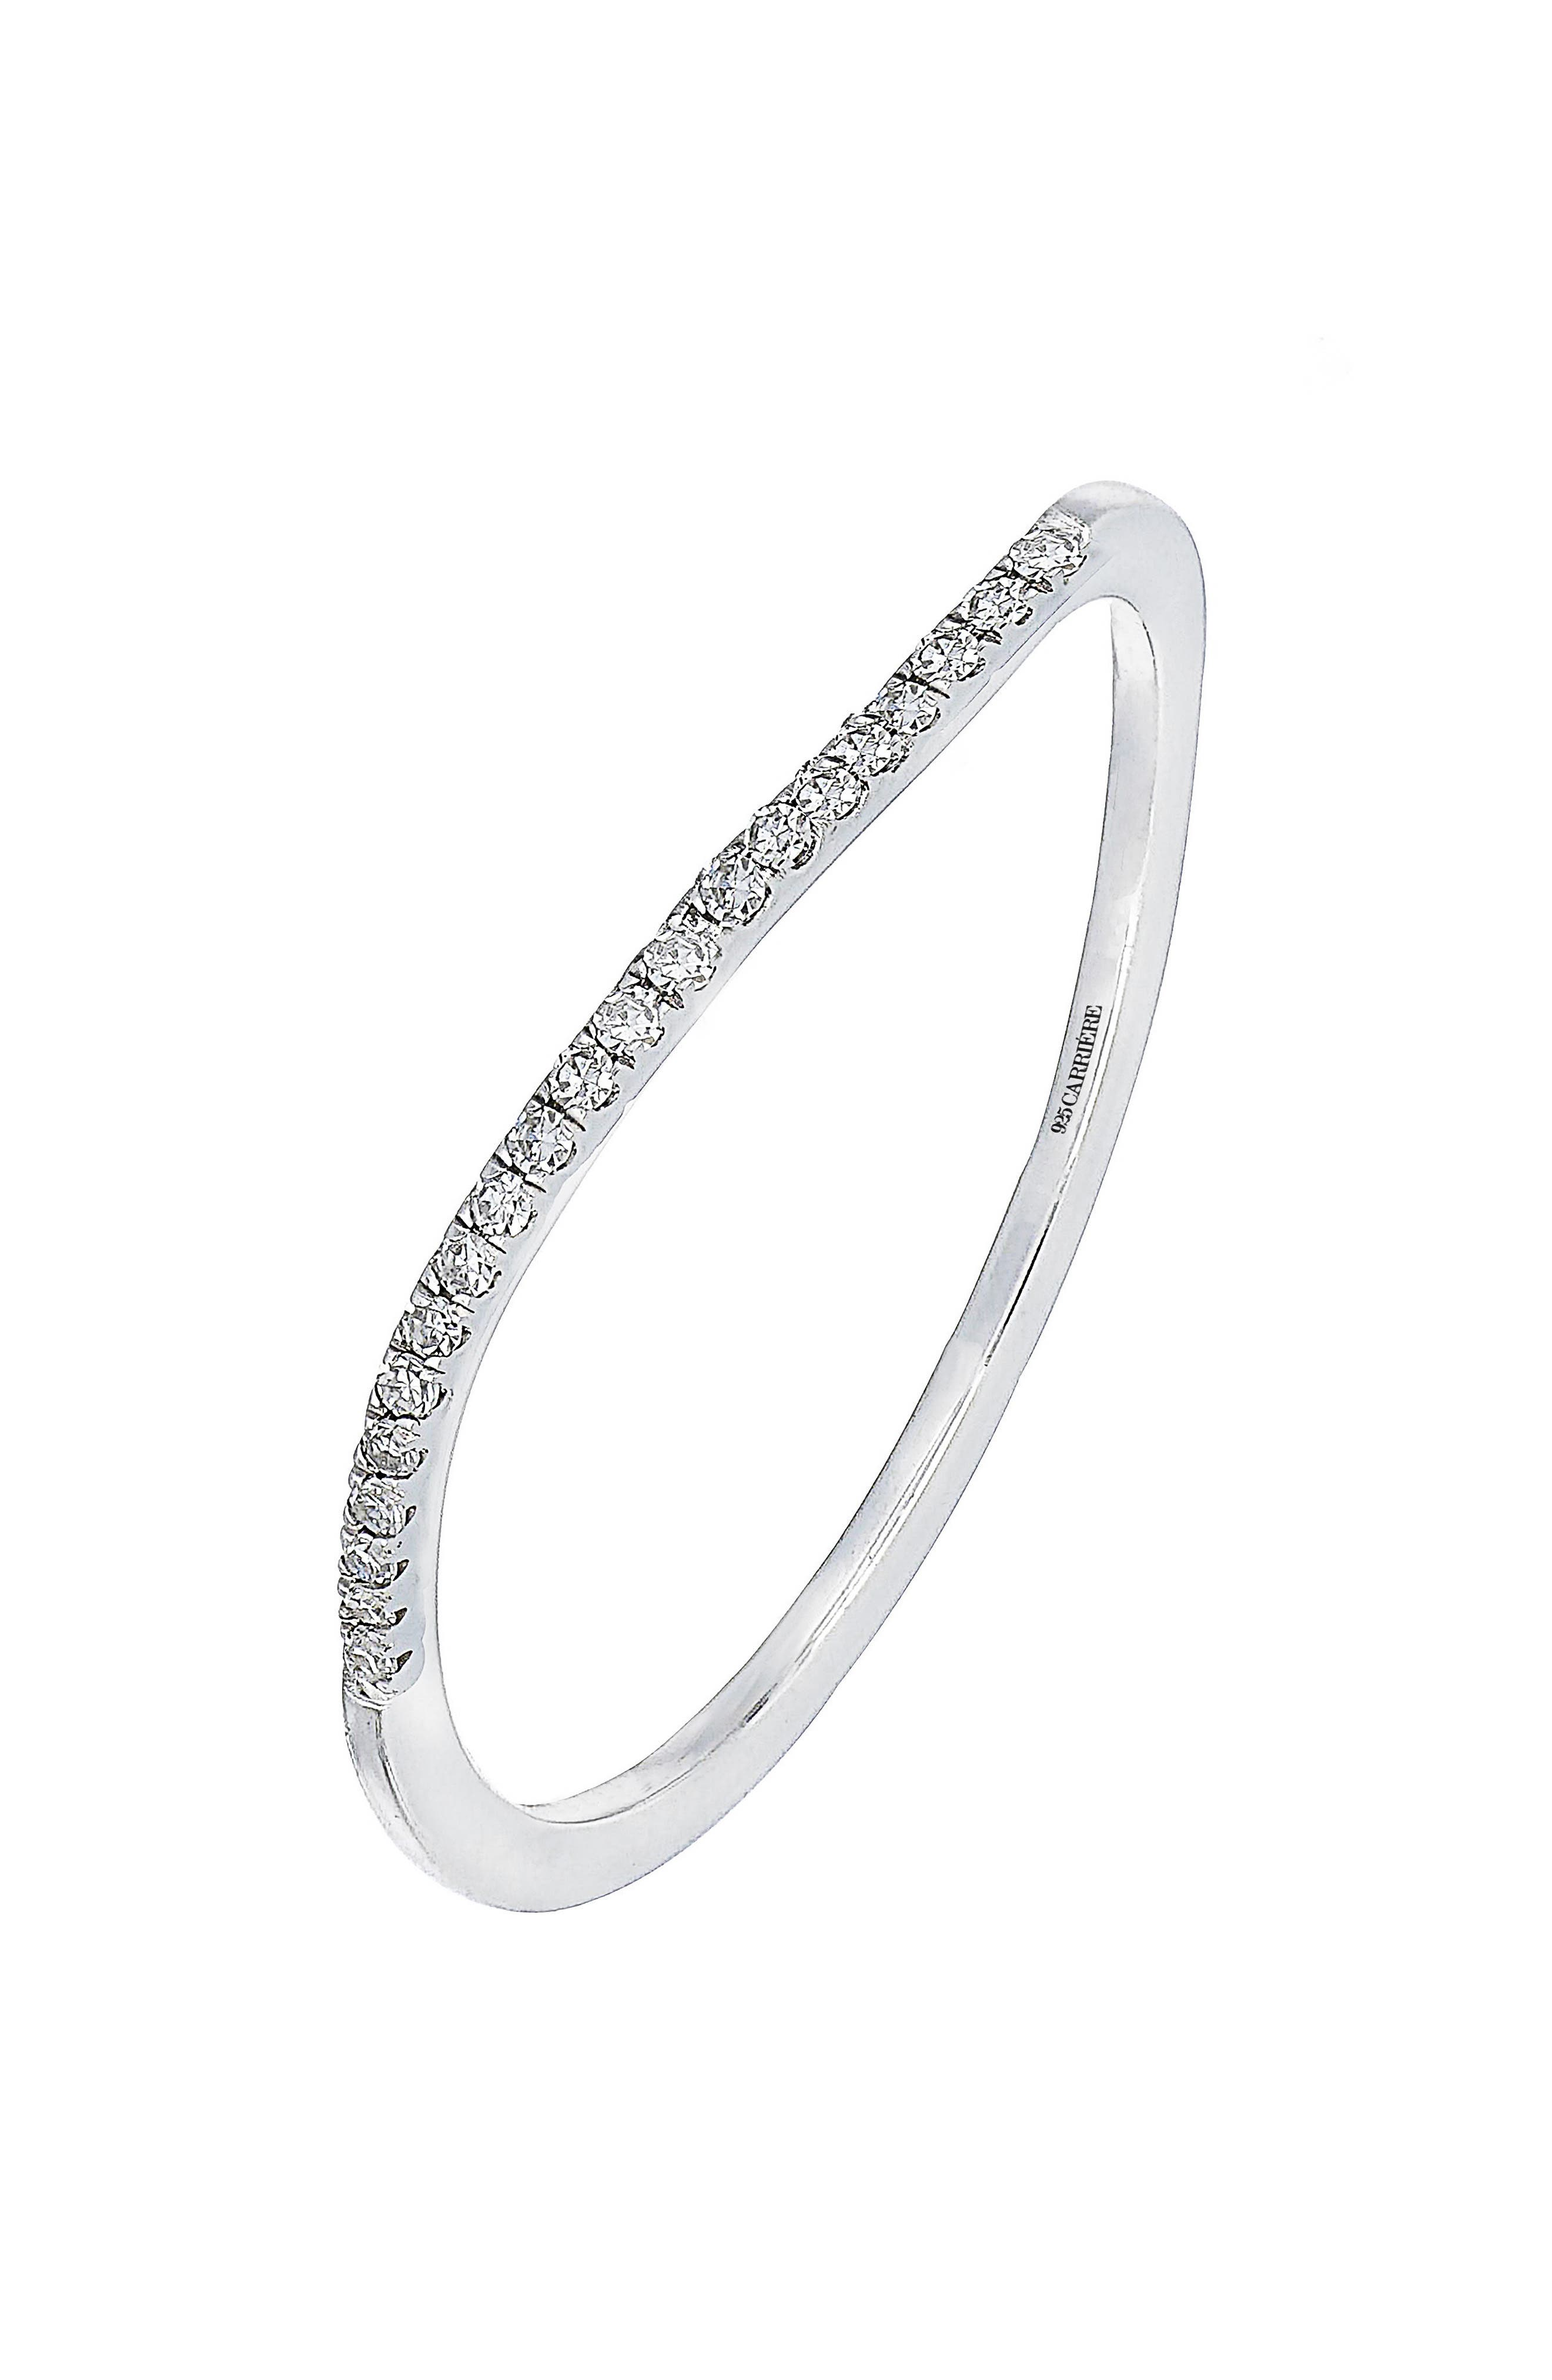 Carrière Diamond Stacking Ring,                         Main,                         color, Silver/ Diamond